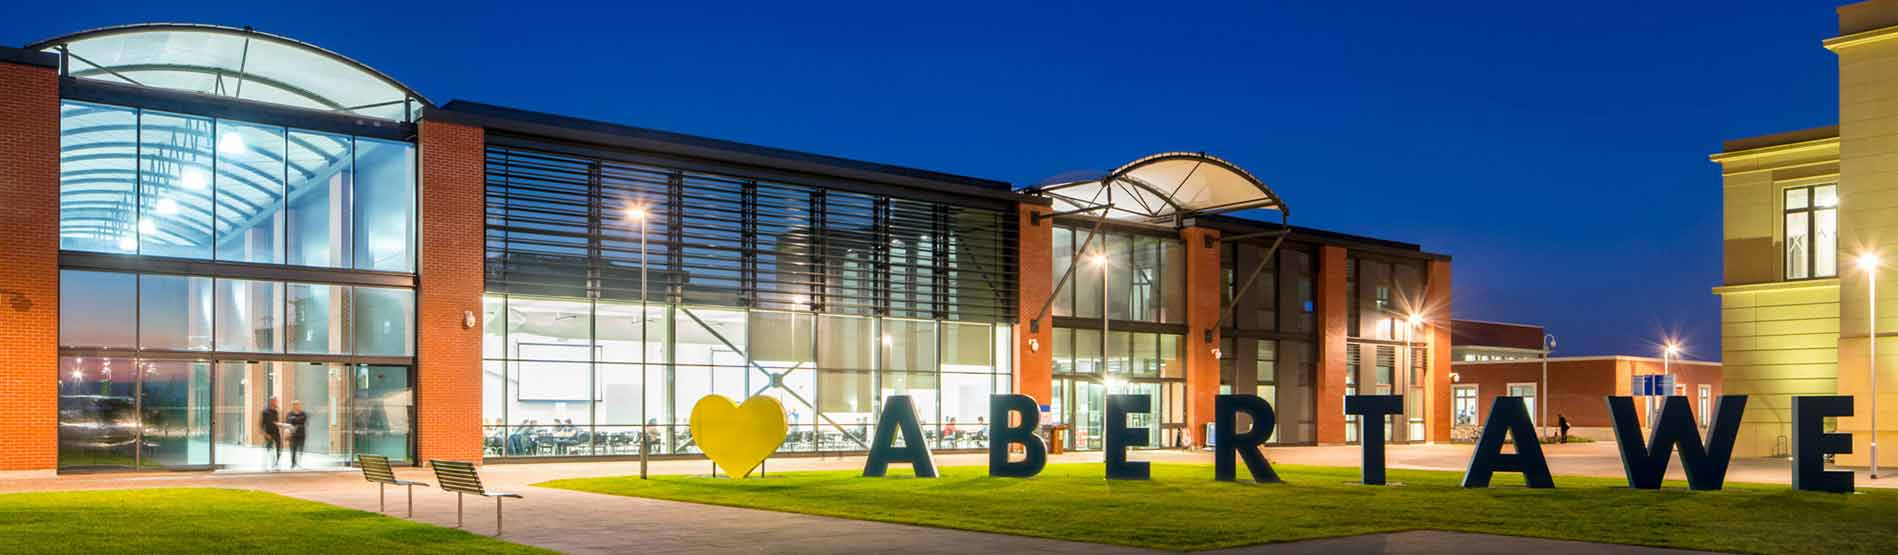 This image was taken at night time. The College of Engineering is lit up. There is a large sign outside which reads 'I love Abertawe'. Abertawe is Welsh for 'Swansea.